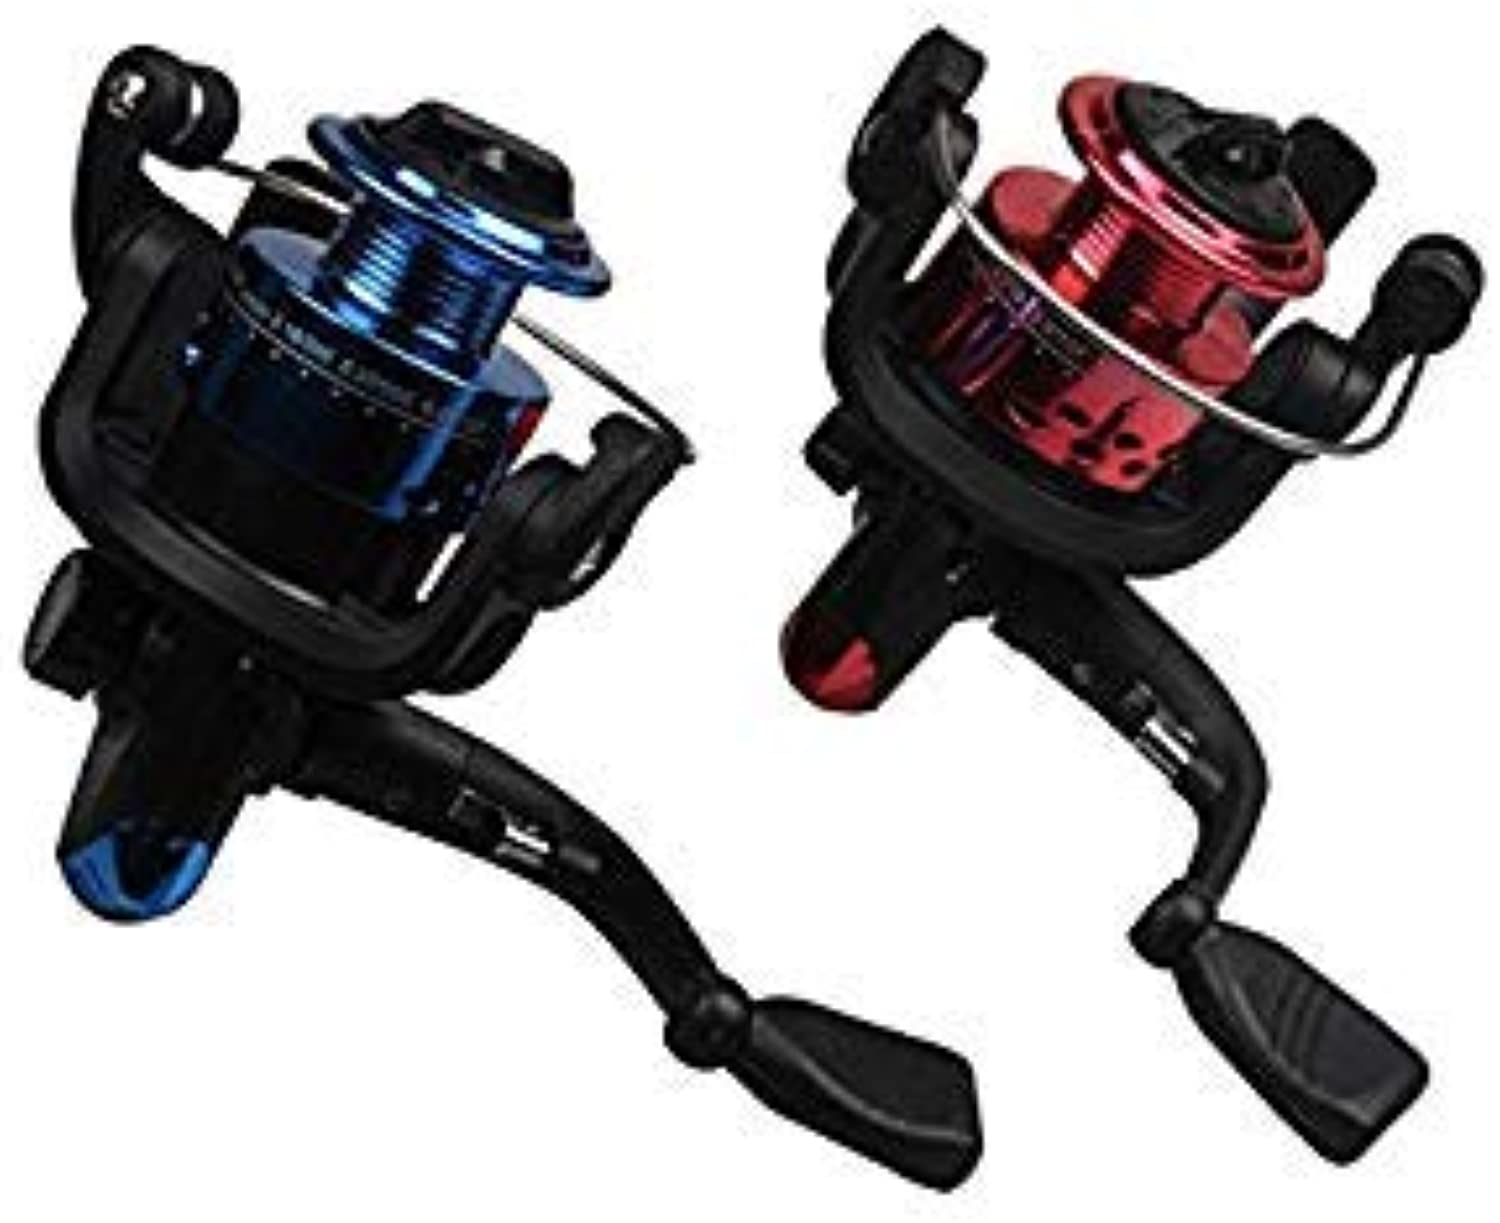 Purple, 3   200 Series 3 Bearings 150G Small Spinning Reels 5.1 1 Ratio Fishing Wheels Left Right Hand Interchangeable Fishing Reels